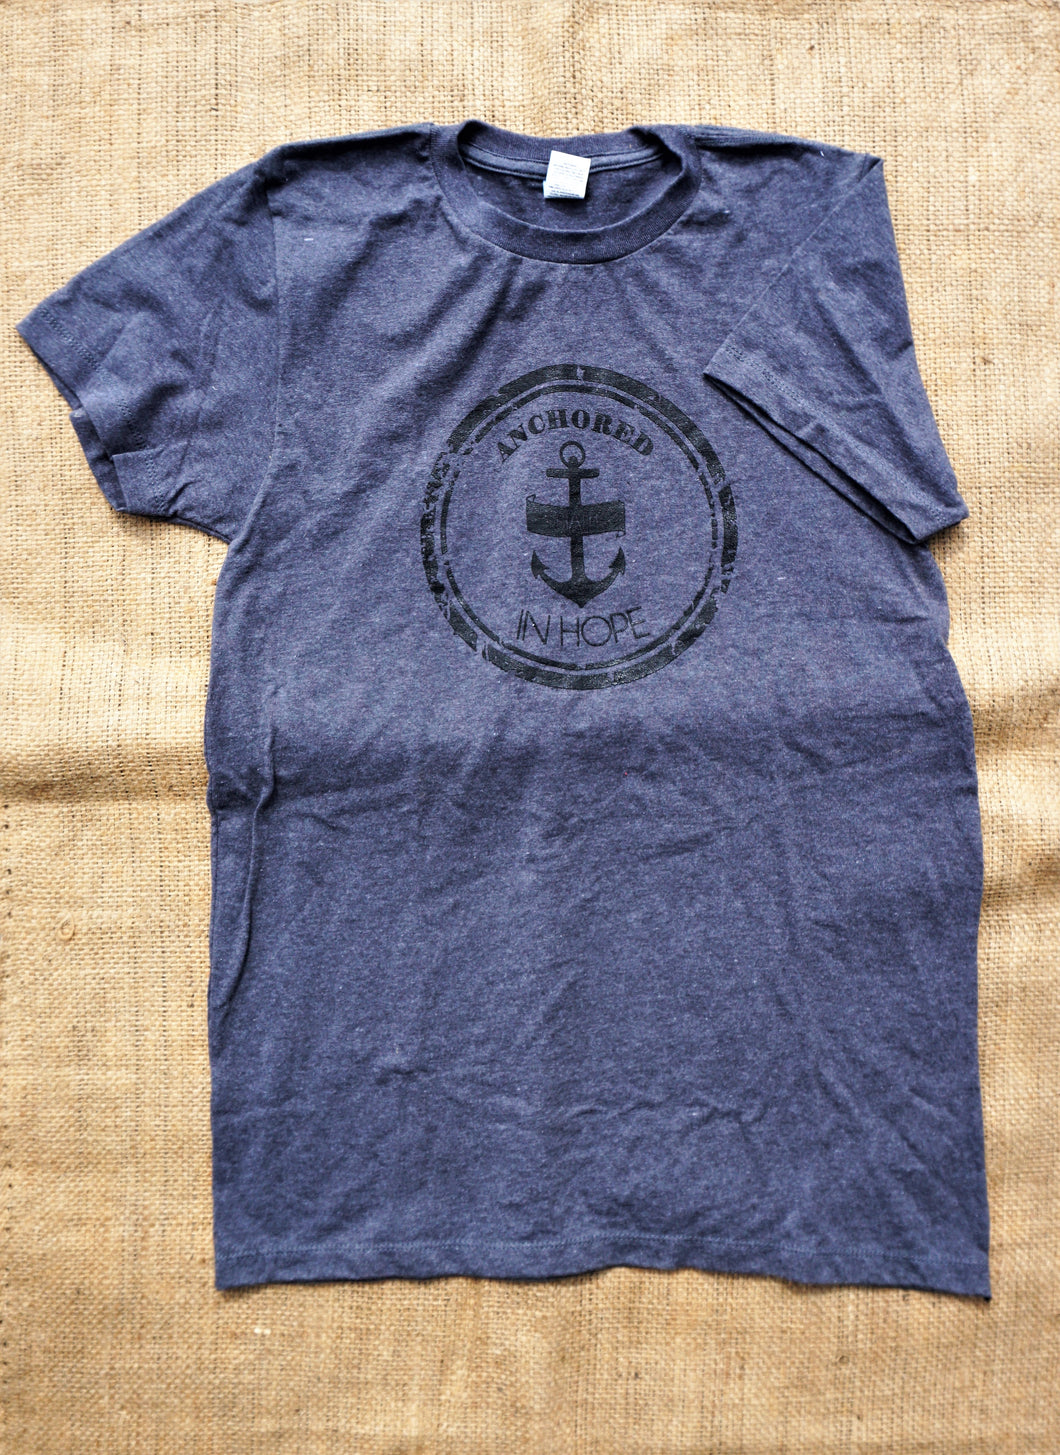 Unisex Short Sleeve T-shirt (Dark Grey)